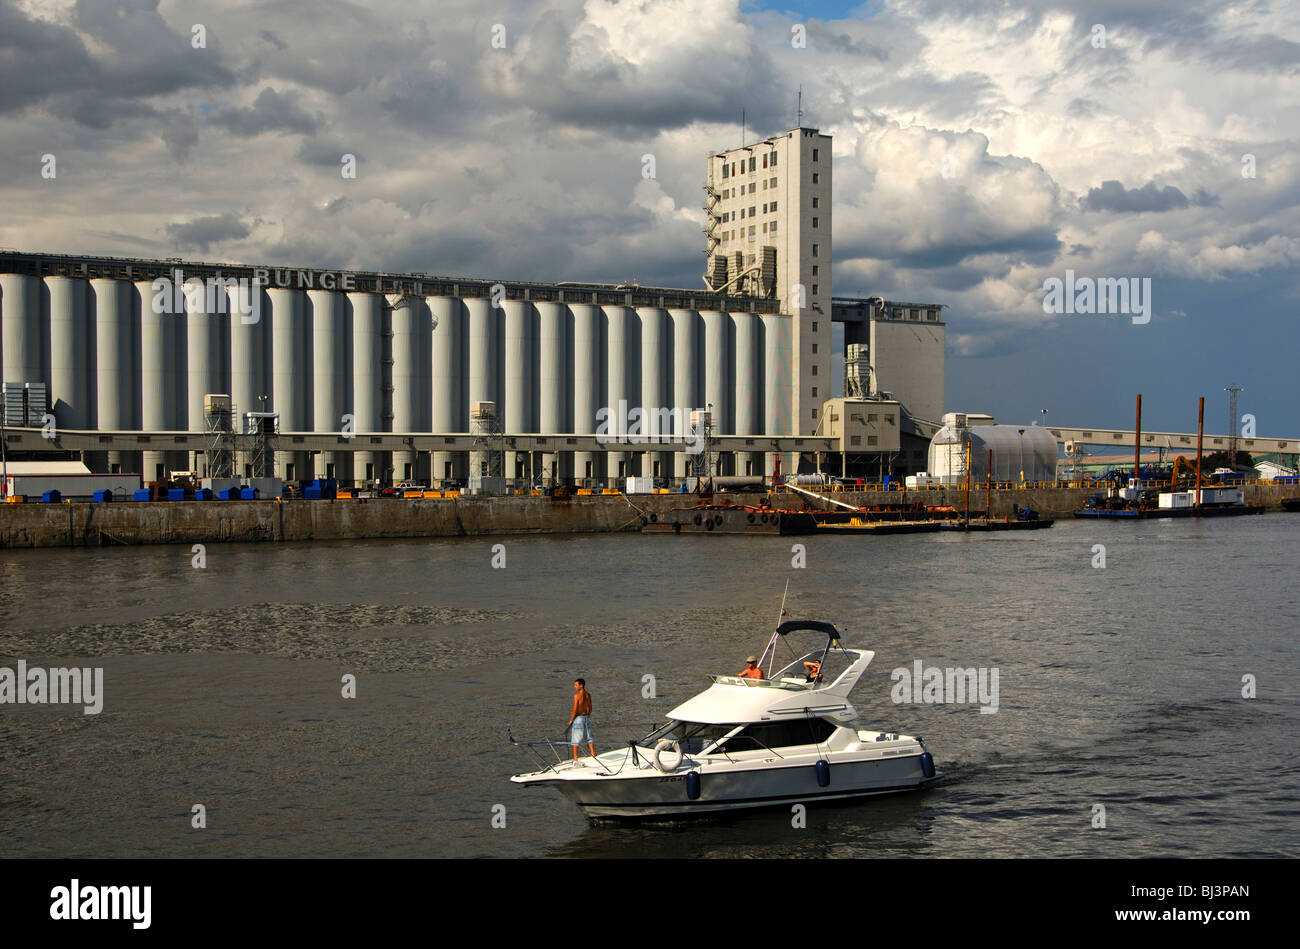 Port bason on the St. Lawrence River with a grain silo of the Bunge, Port of Quebec City, Quebec, Canada - Stock Image